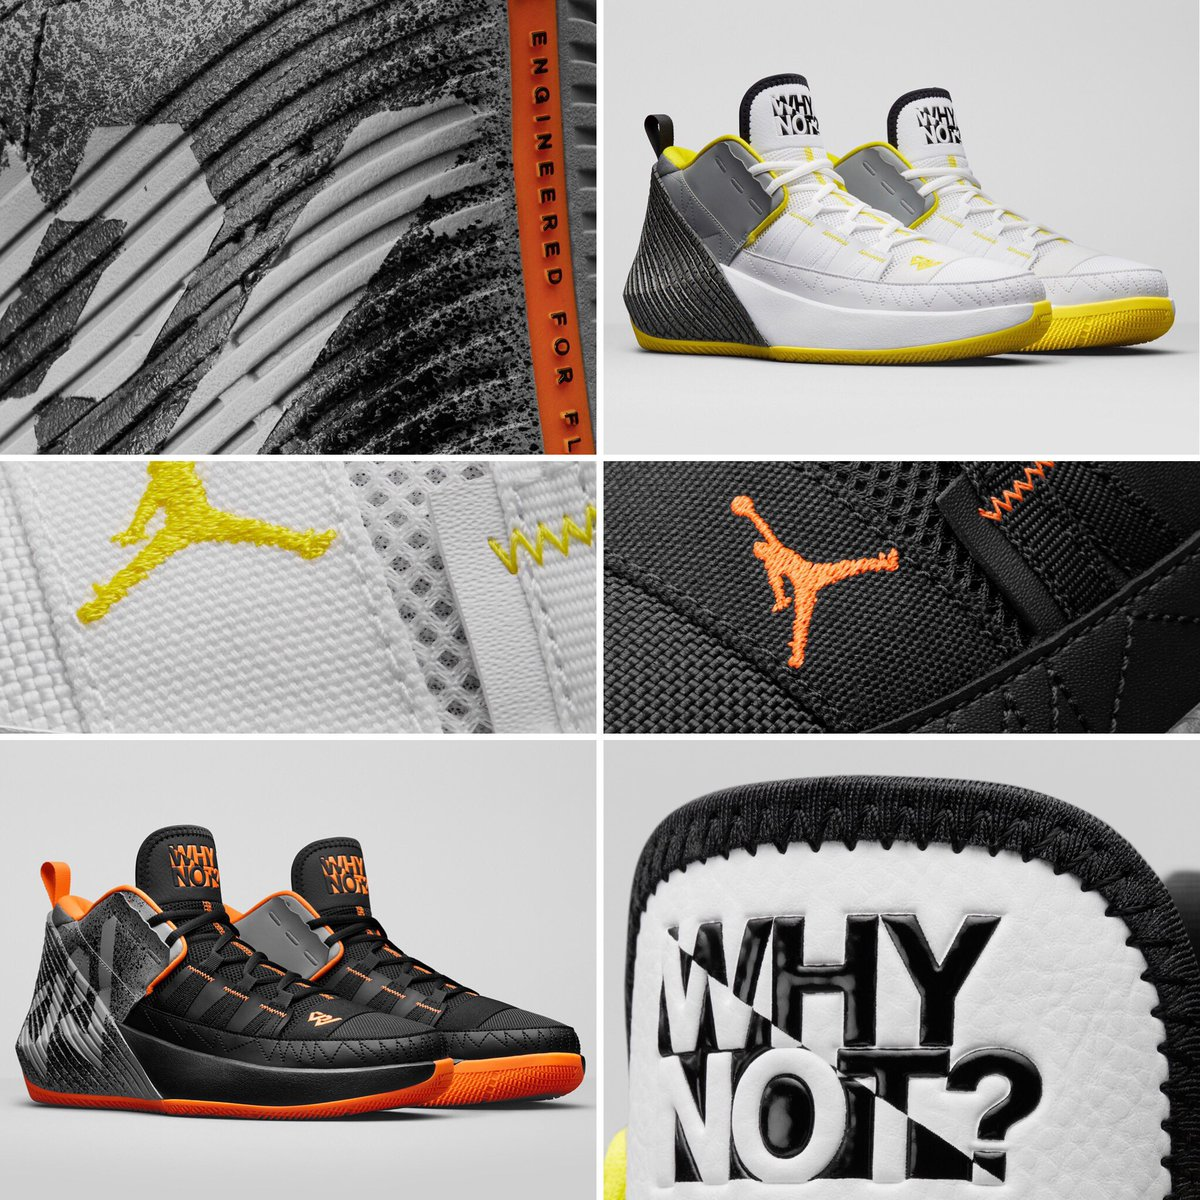 958f31306734 gave the why not zer01 a little remix so check out the chaos out now in